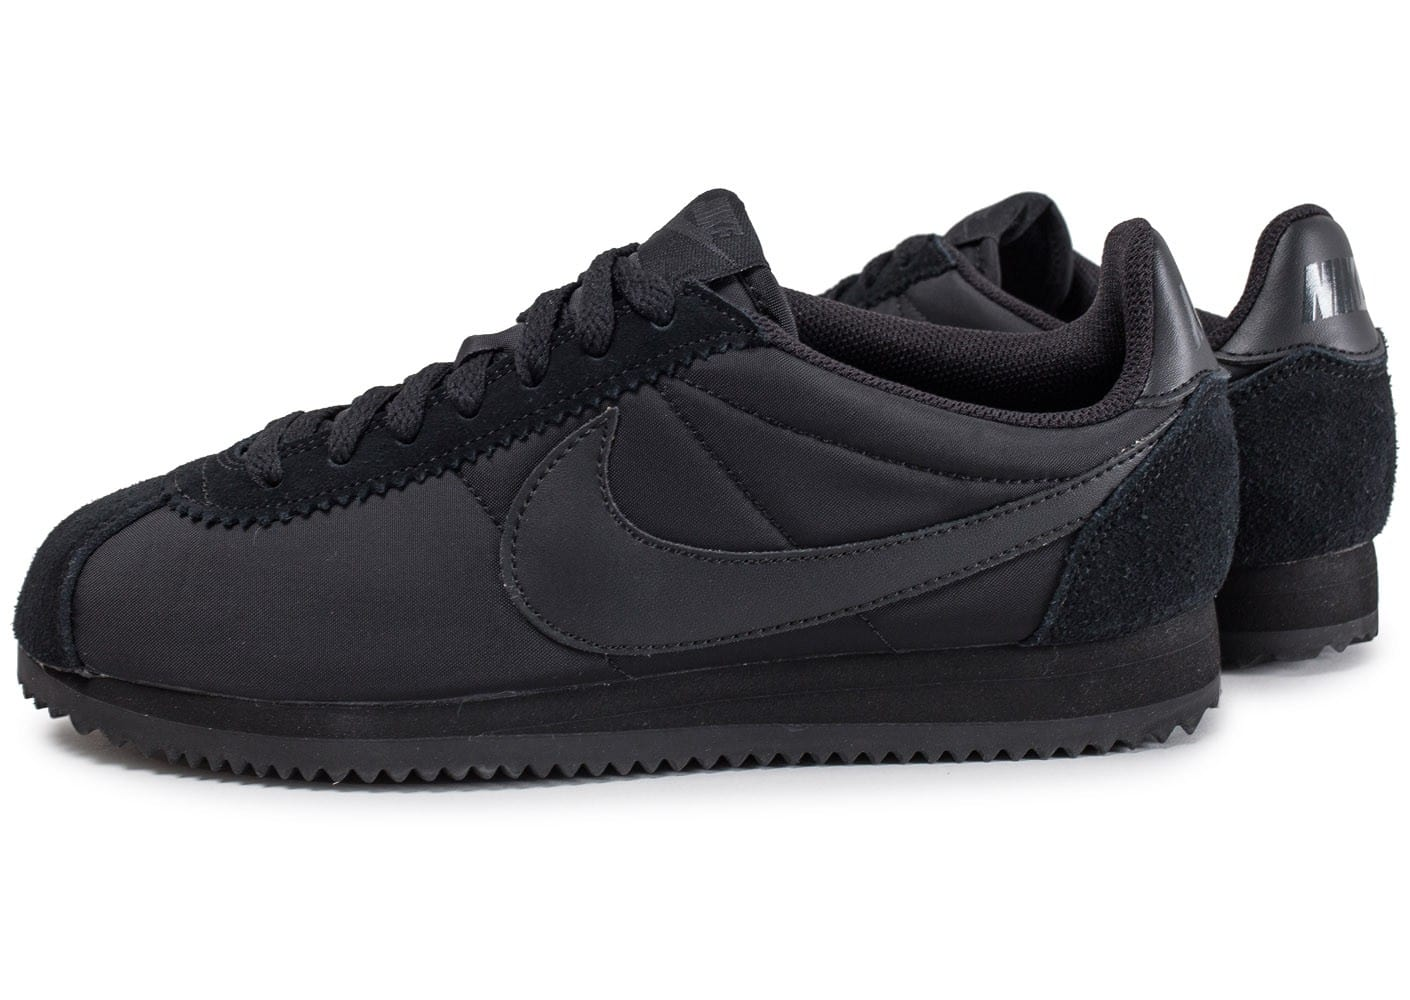 nike cortez nylon noire chaussures homme chausport. Black Bedroom Furniture Sets. Home Design Ideas